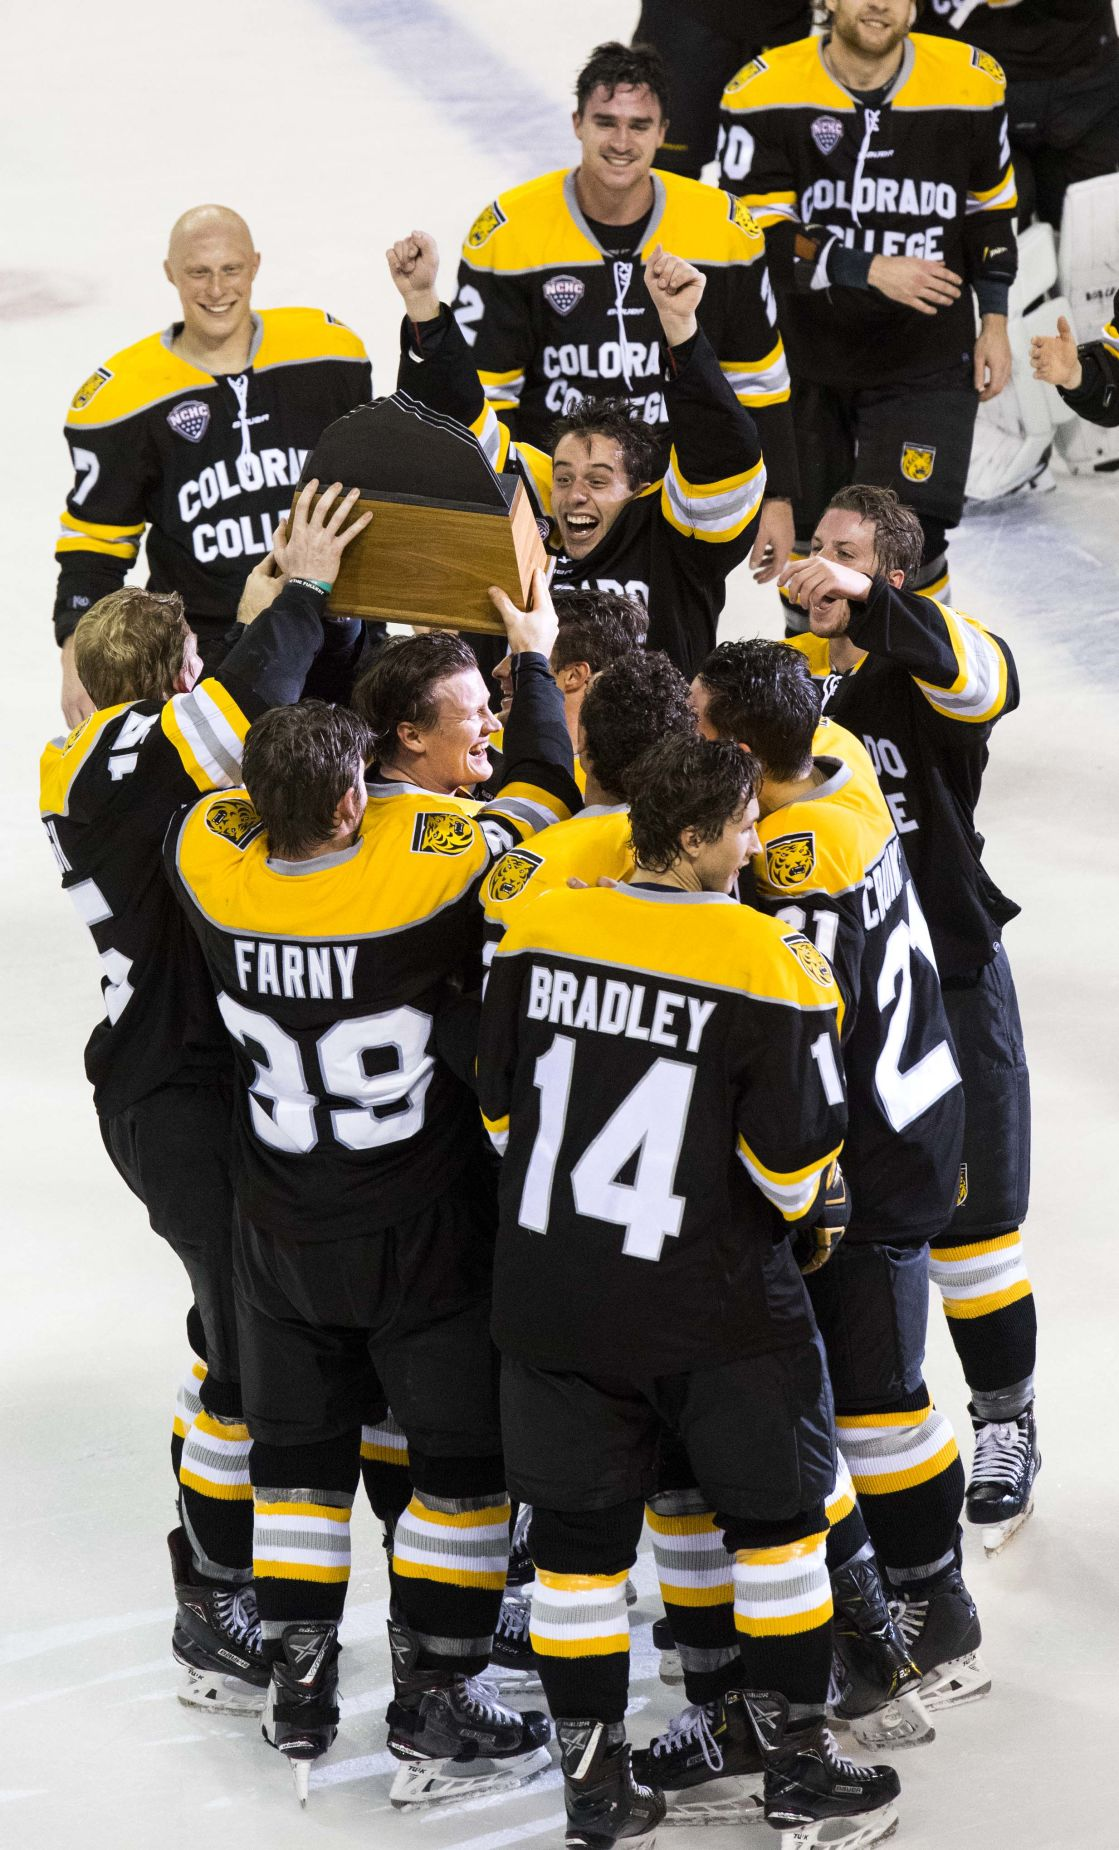 Colorado College Takes Home Pikes Peak Trophy For First Time With Blowout Of Air Force